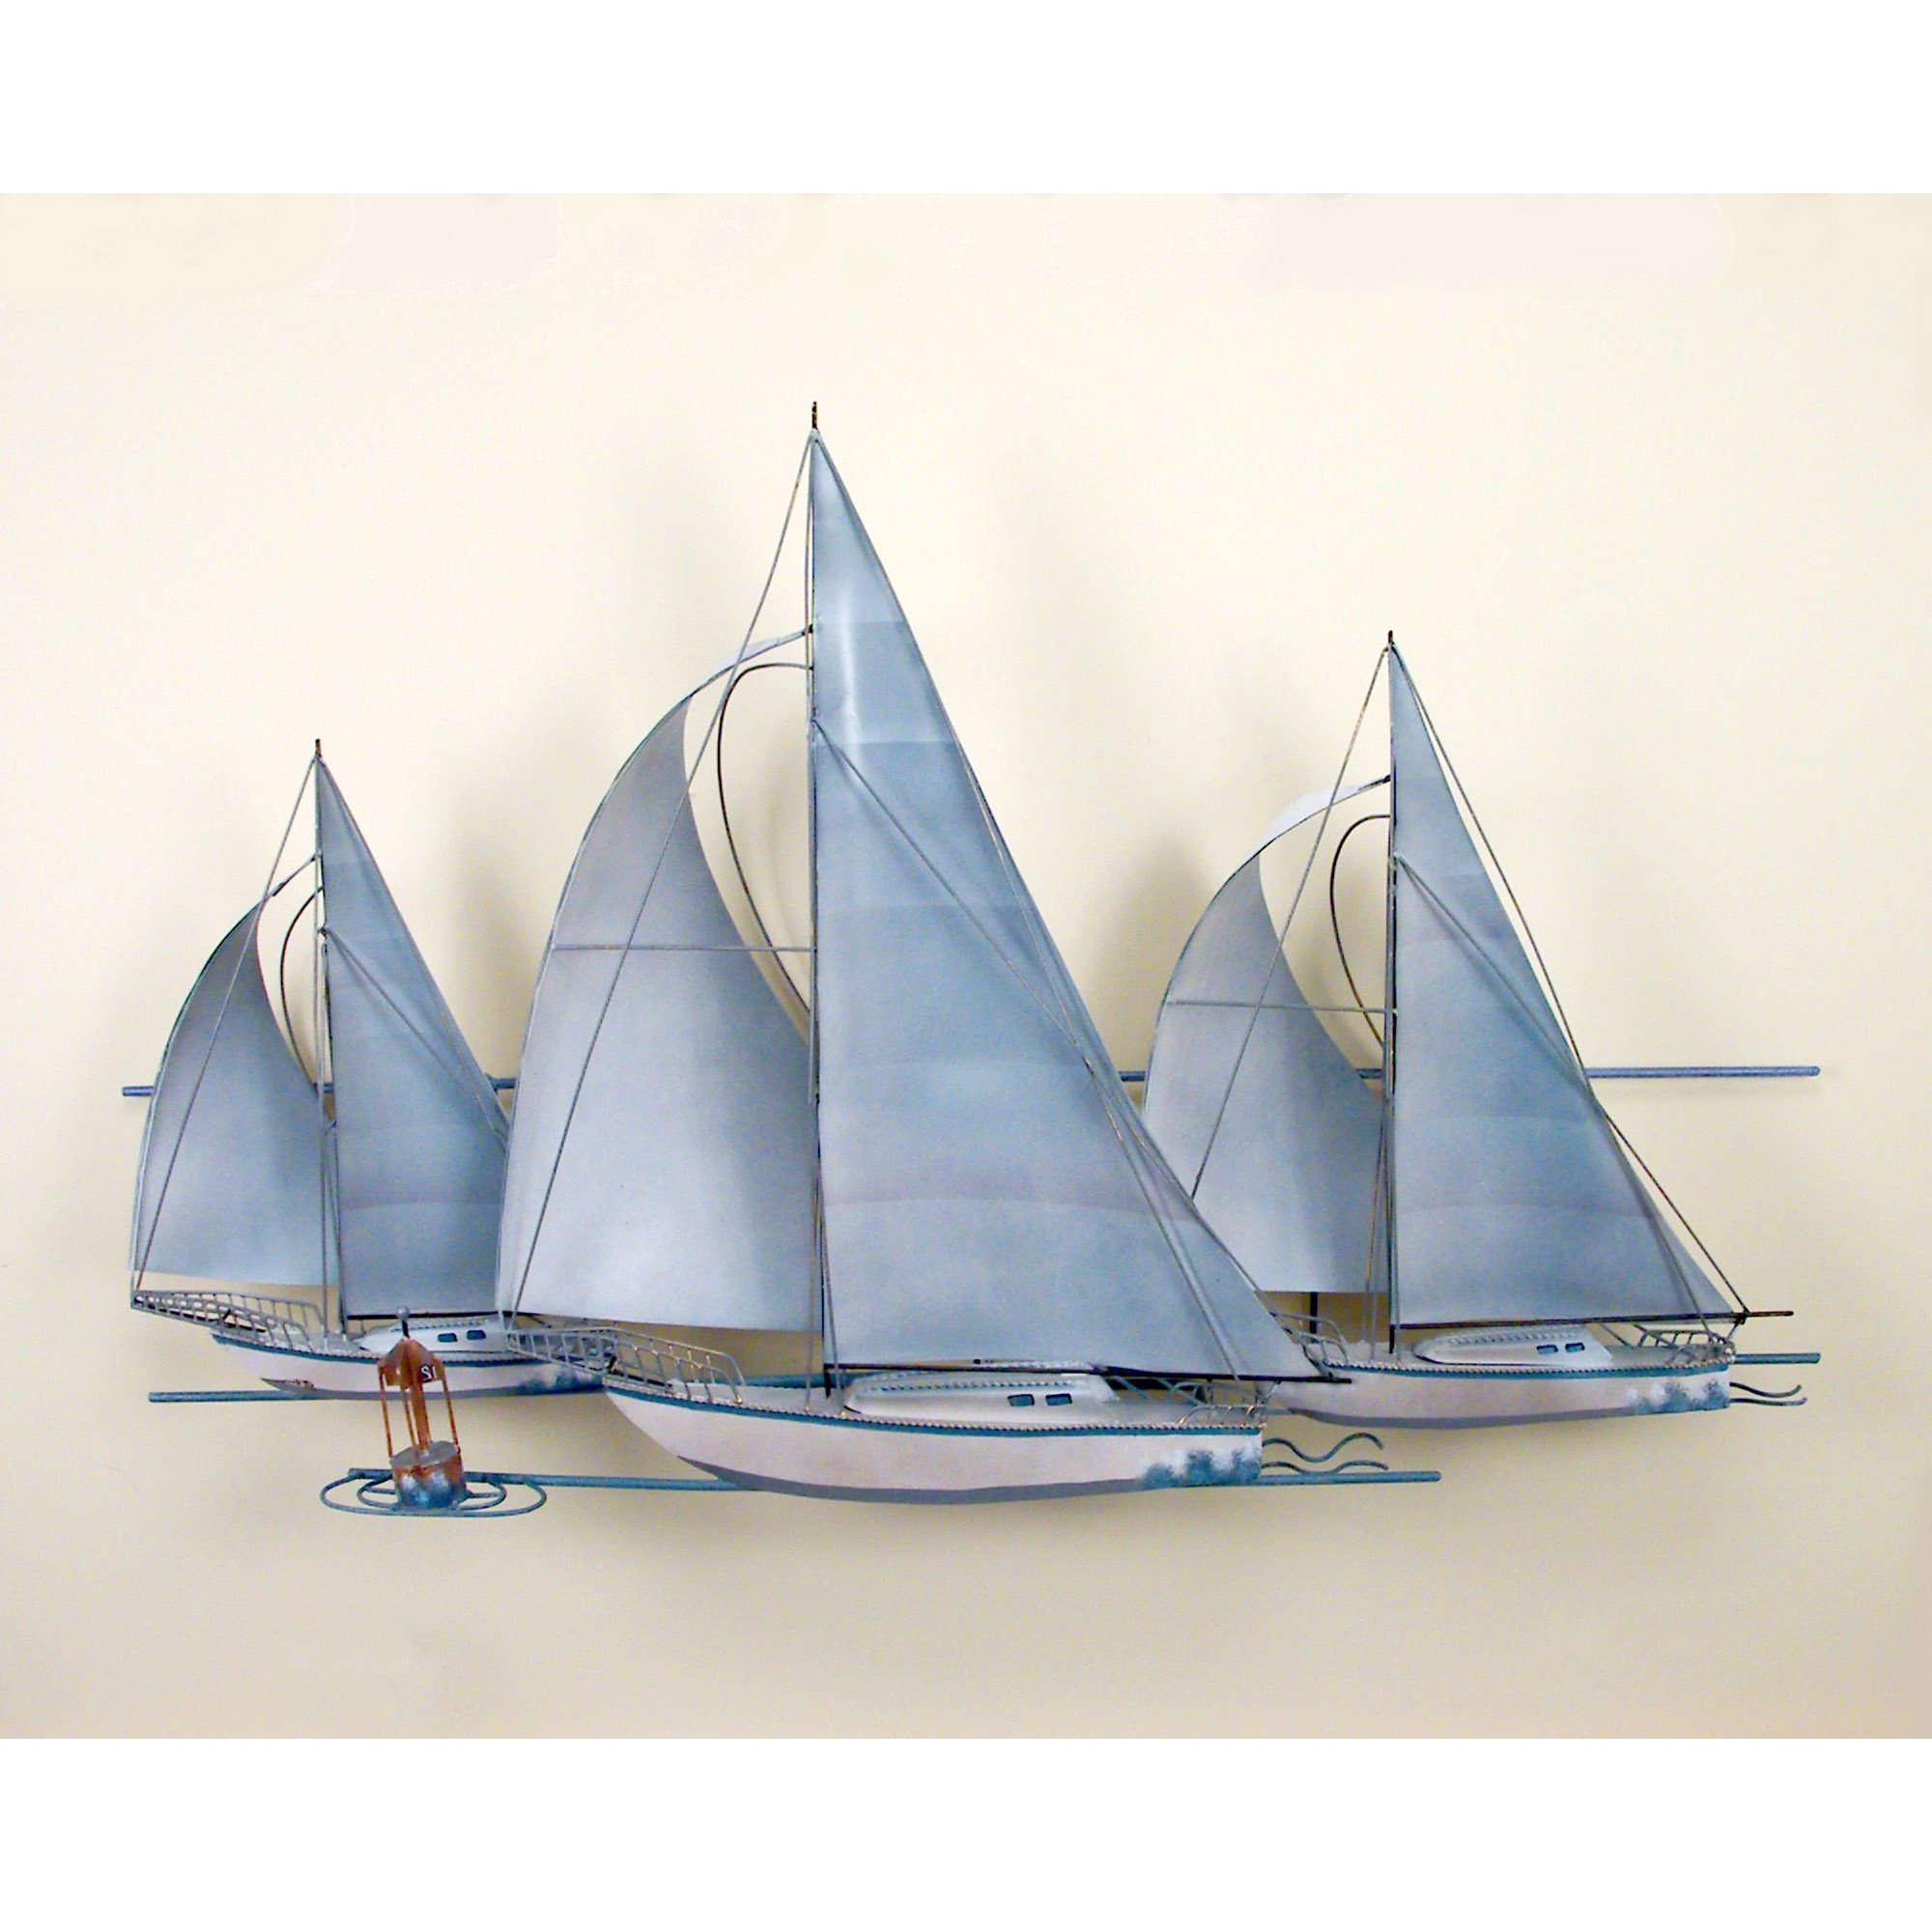 At The Races,three Sail Boats, Race, Wall Art, Wall Hanging Throughout Recent Metal Sailboat Wall Art (View 3 of 15)